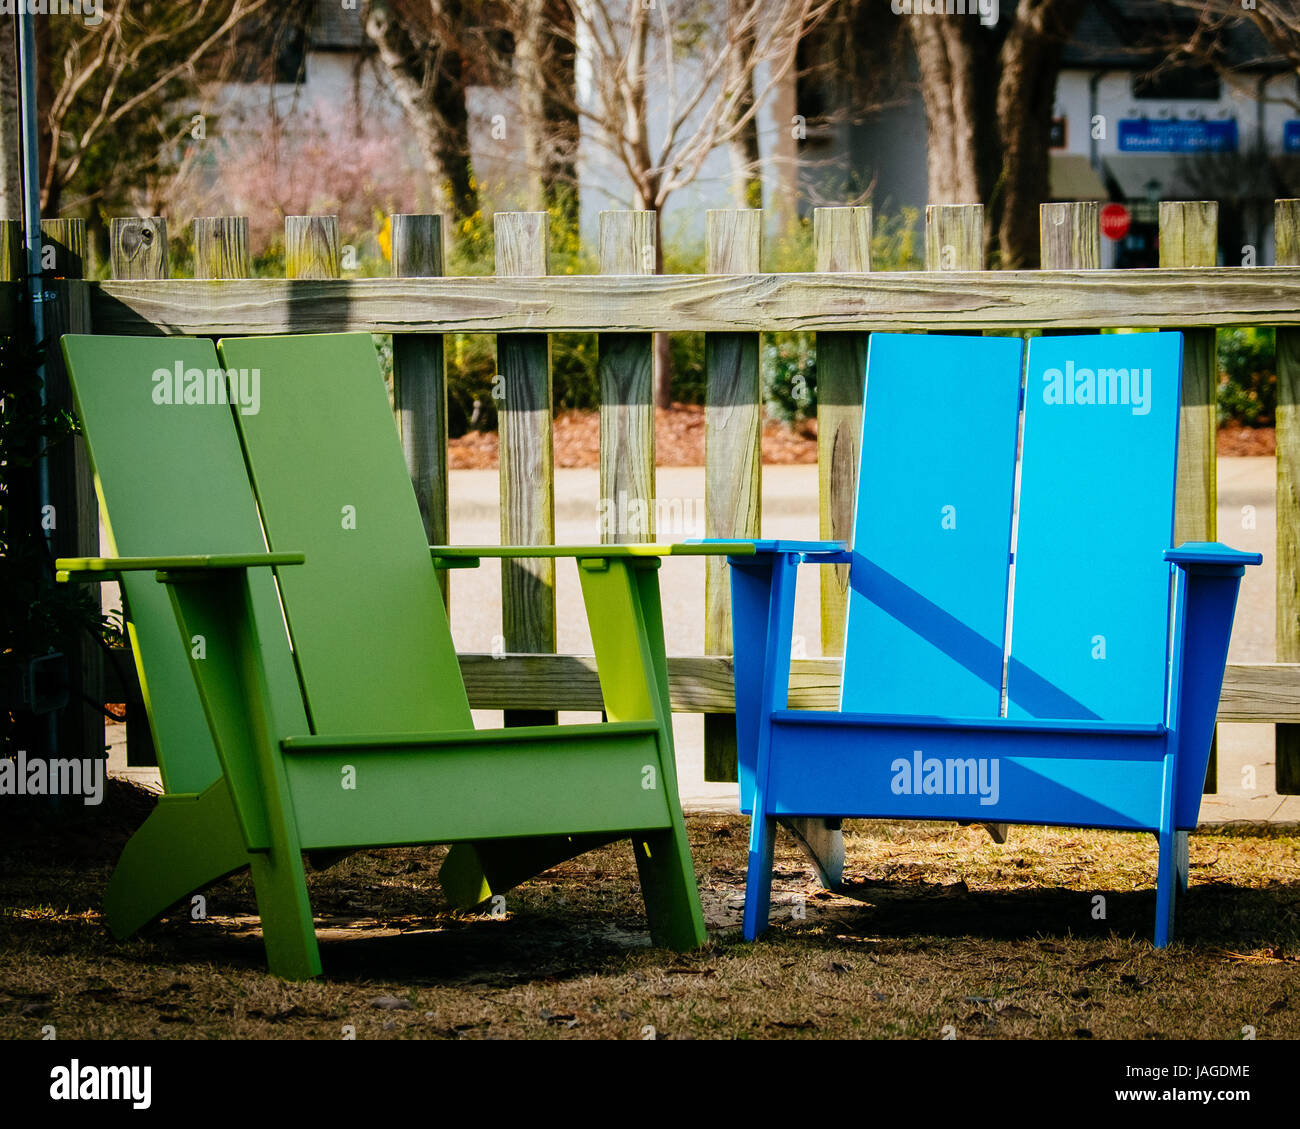 Two Brightly Colored Blue And Green Adirondack Chairs In An